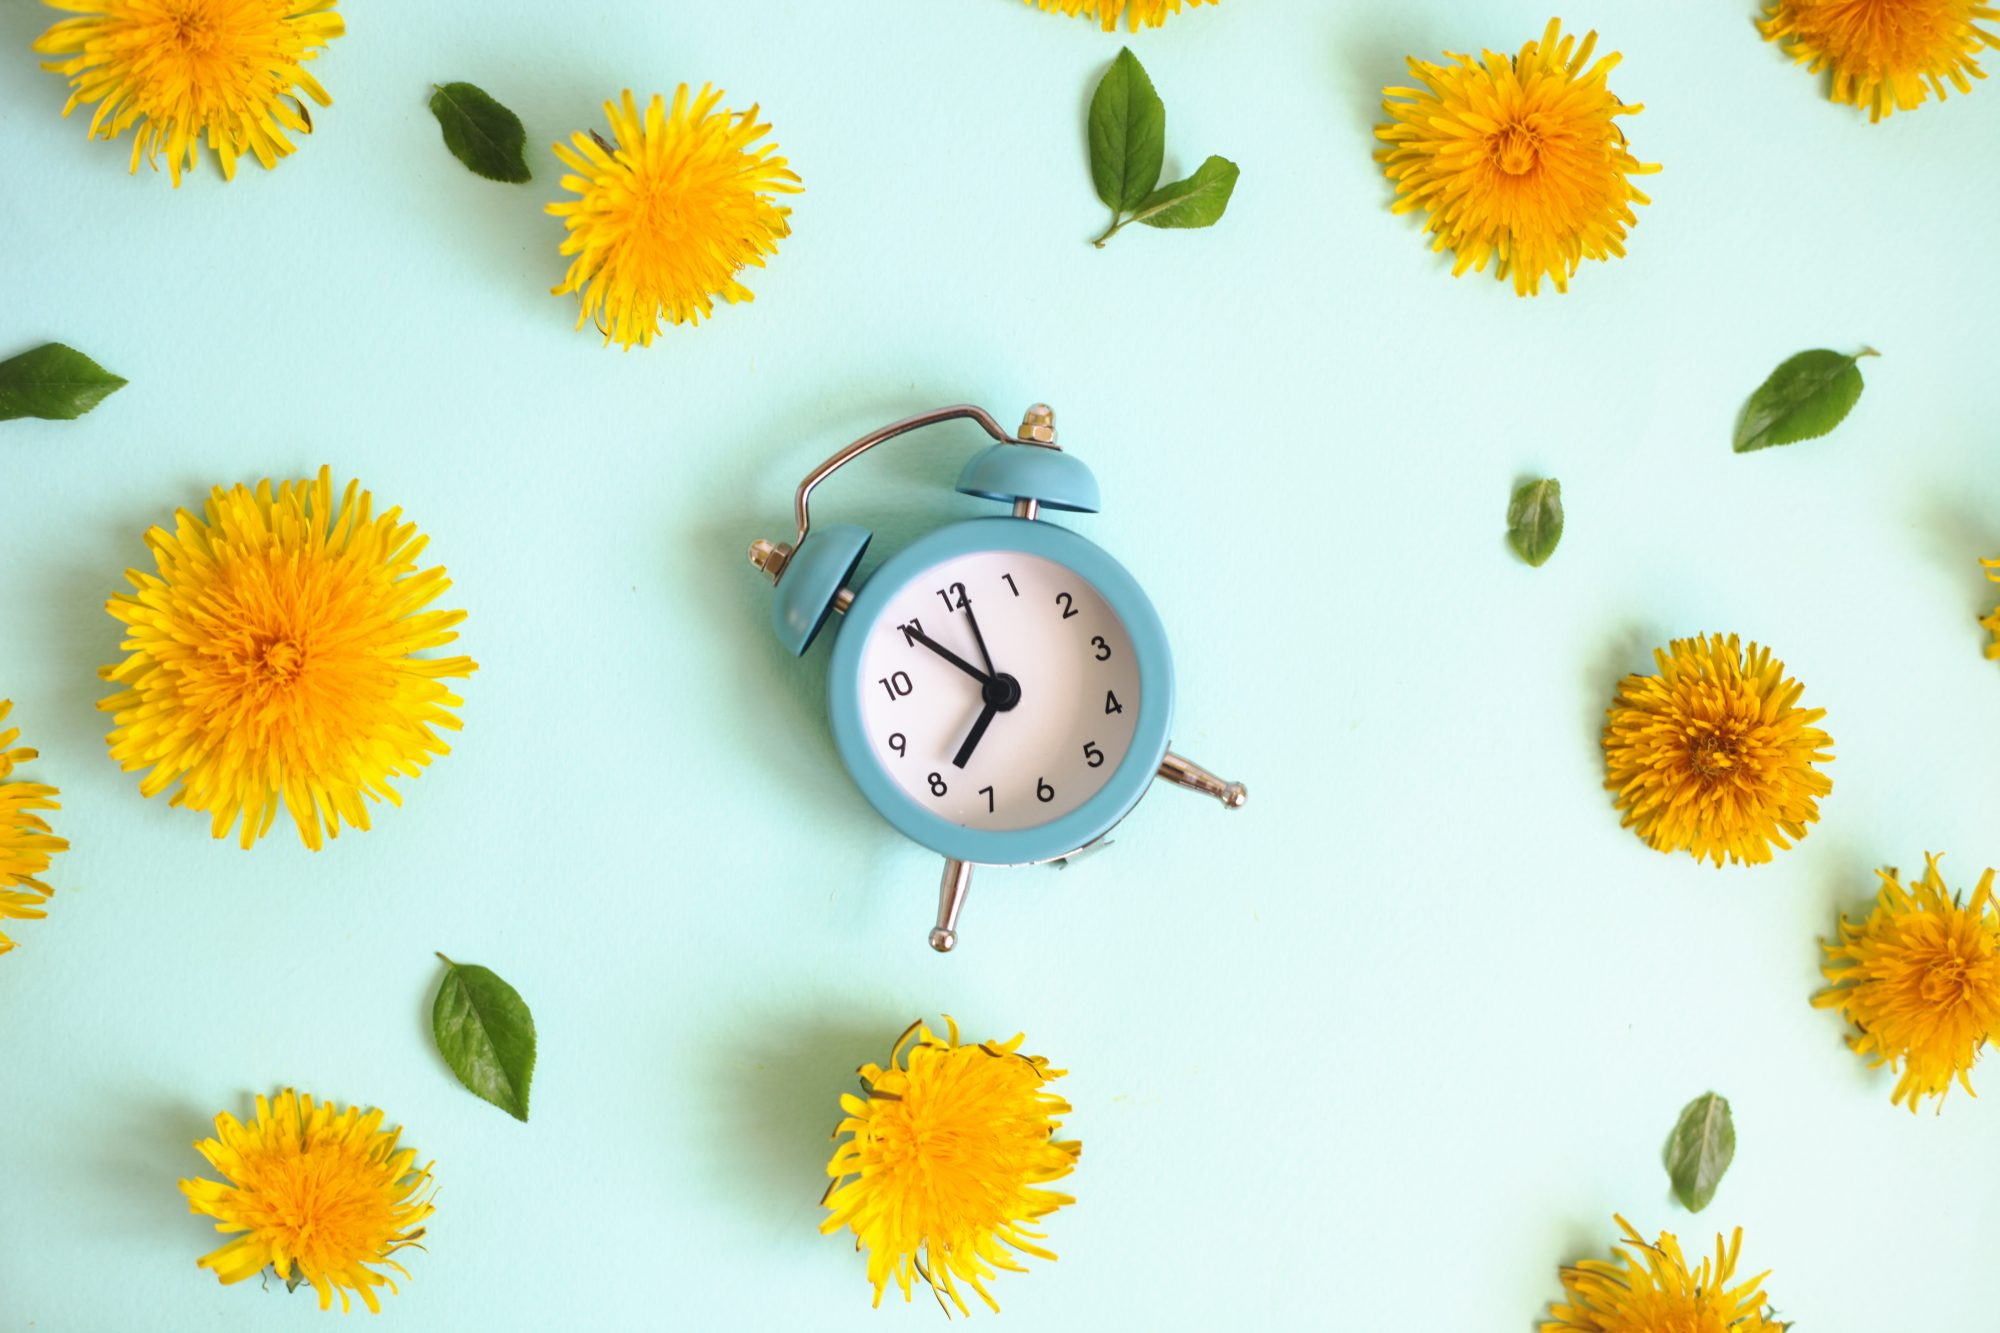 Study: Waking Up an Hour Earlier Help Prevent Depression: alarm clock and flowers